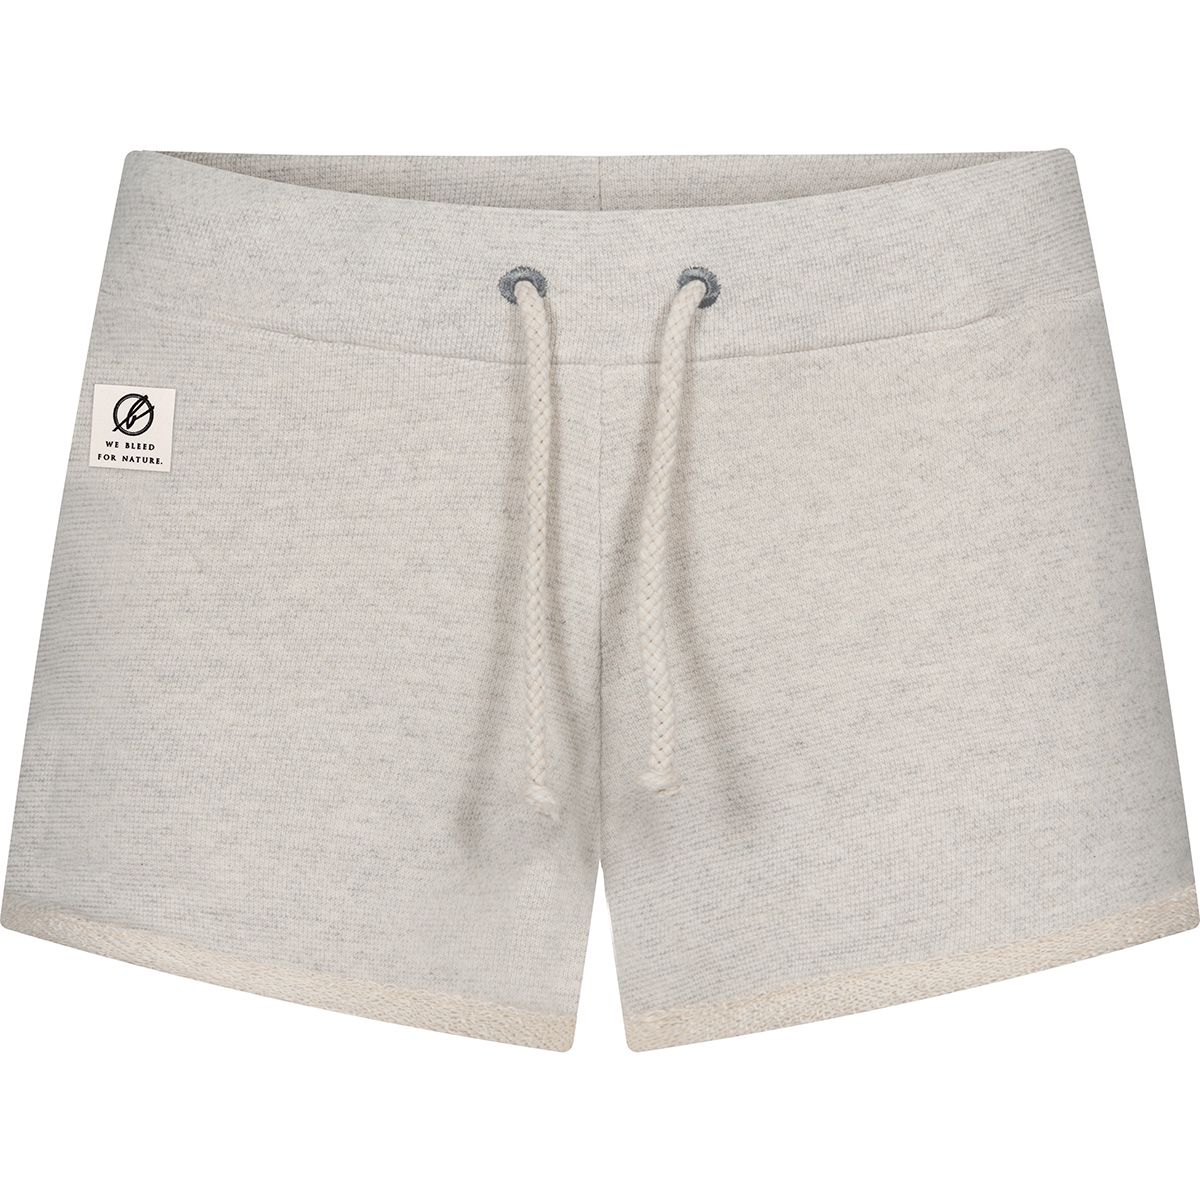 Bleed Damen Natural Sweat Shorts (Größe M, Weiß) | Kurze Hosen > Damen